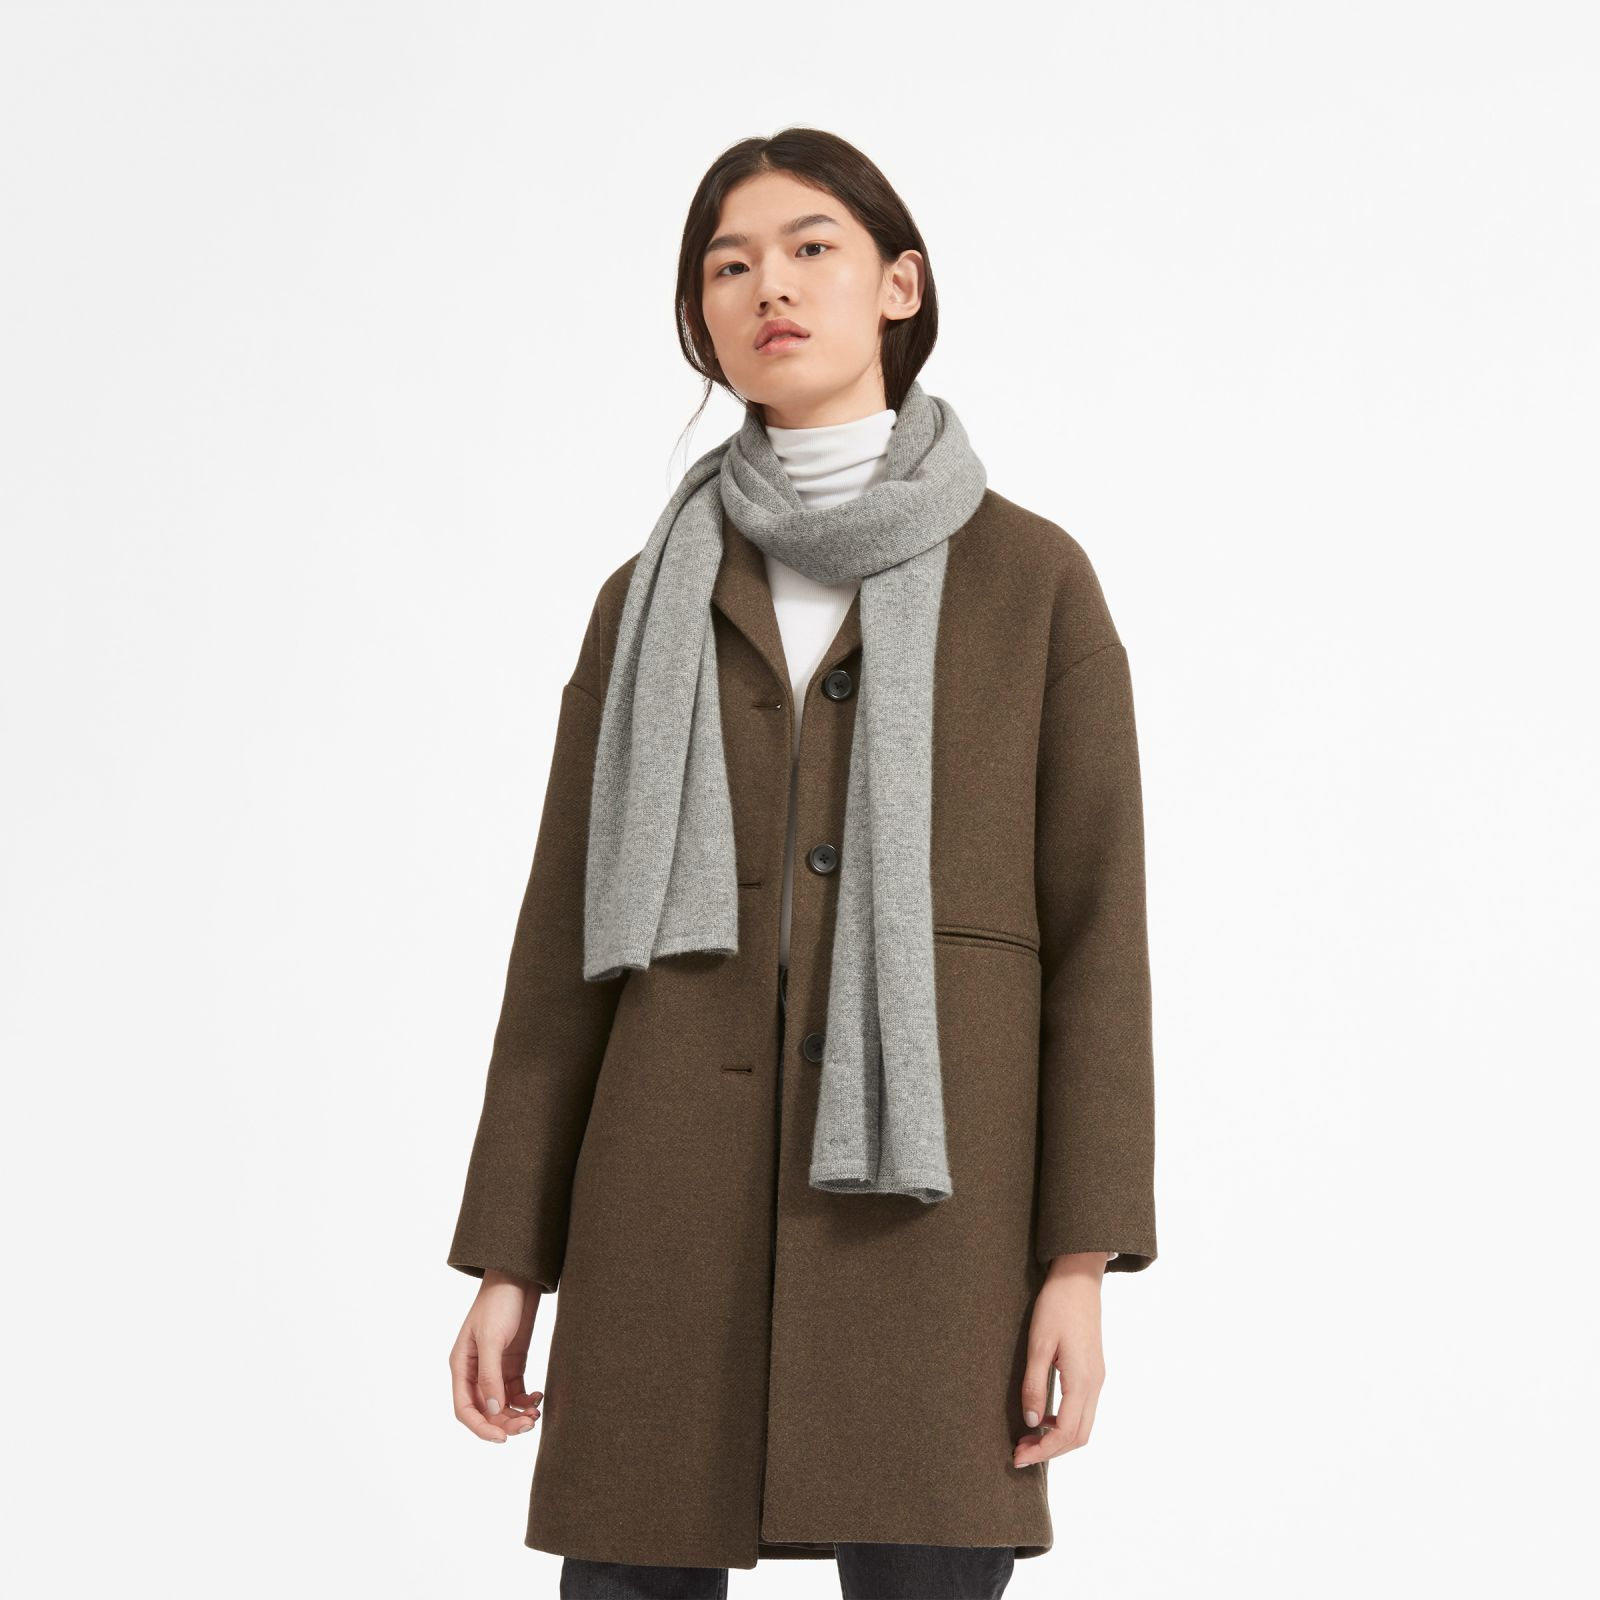 women's cashmere scarf by everlane in heather grey